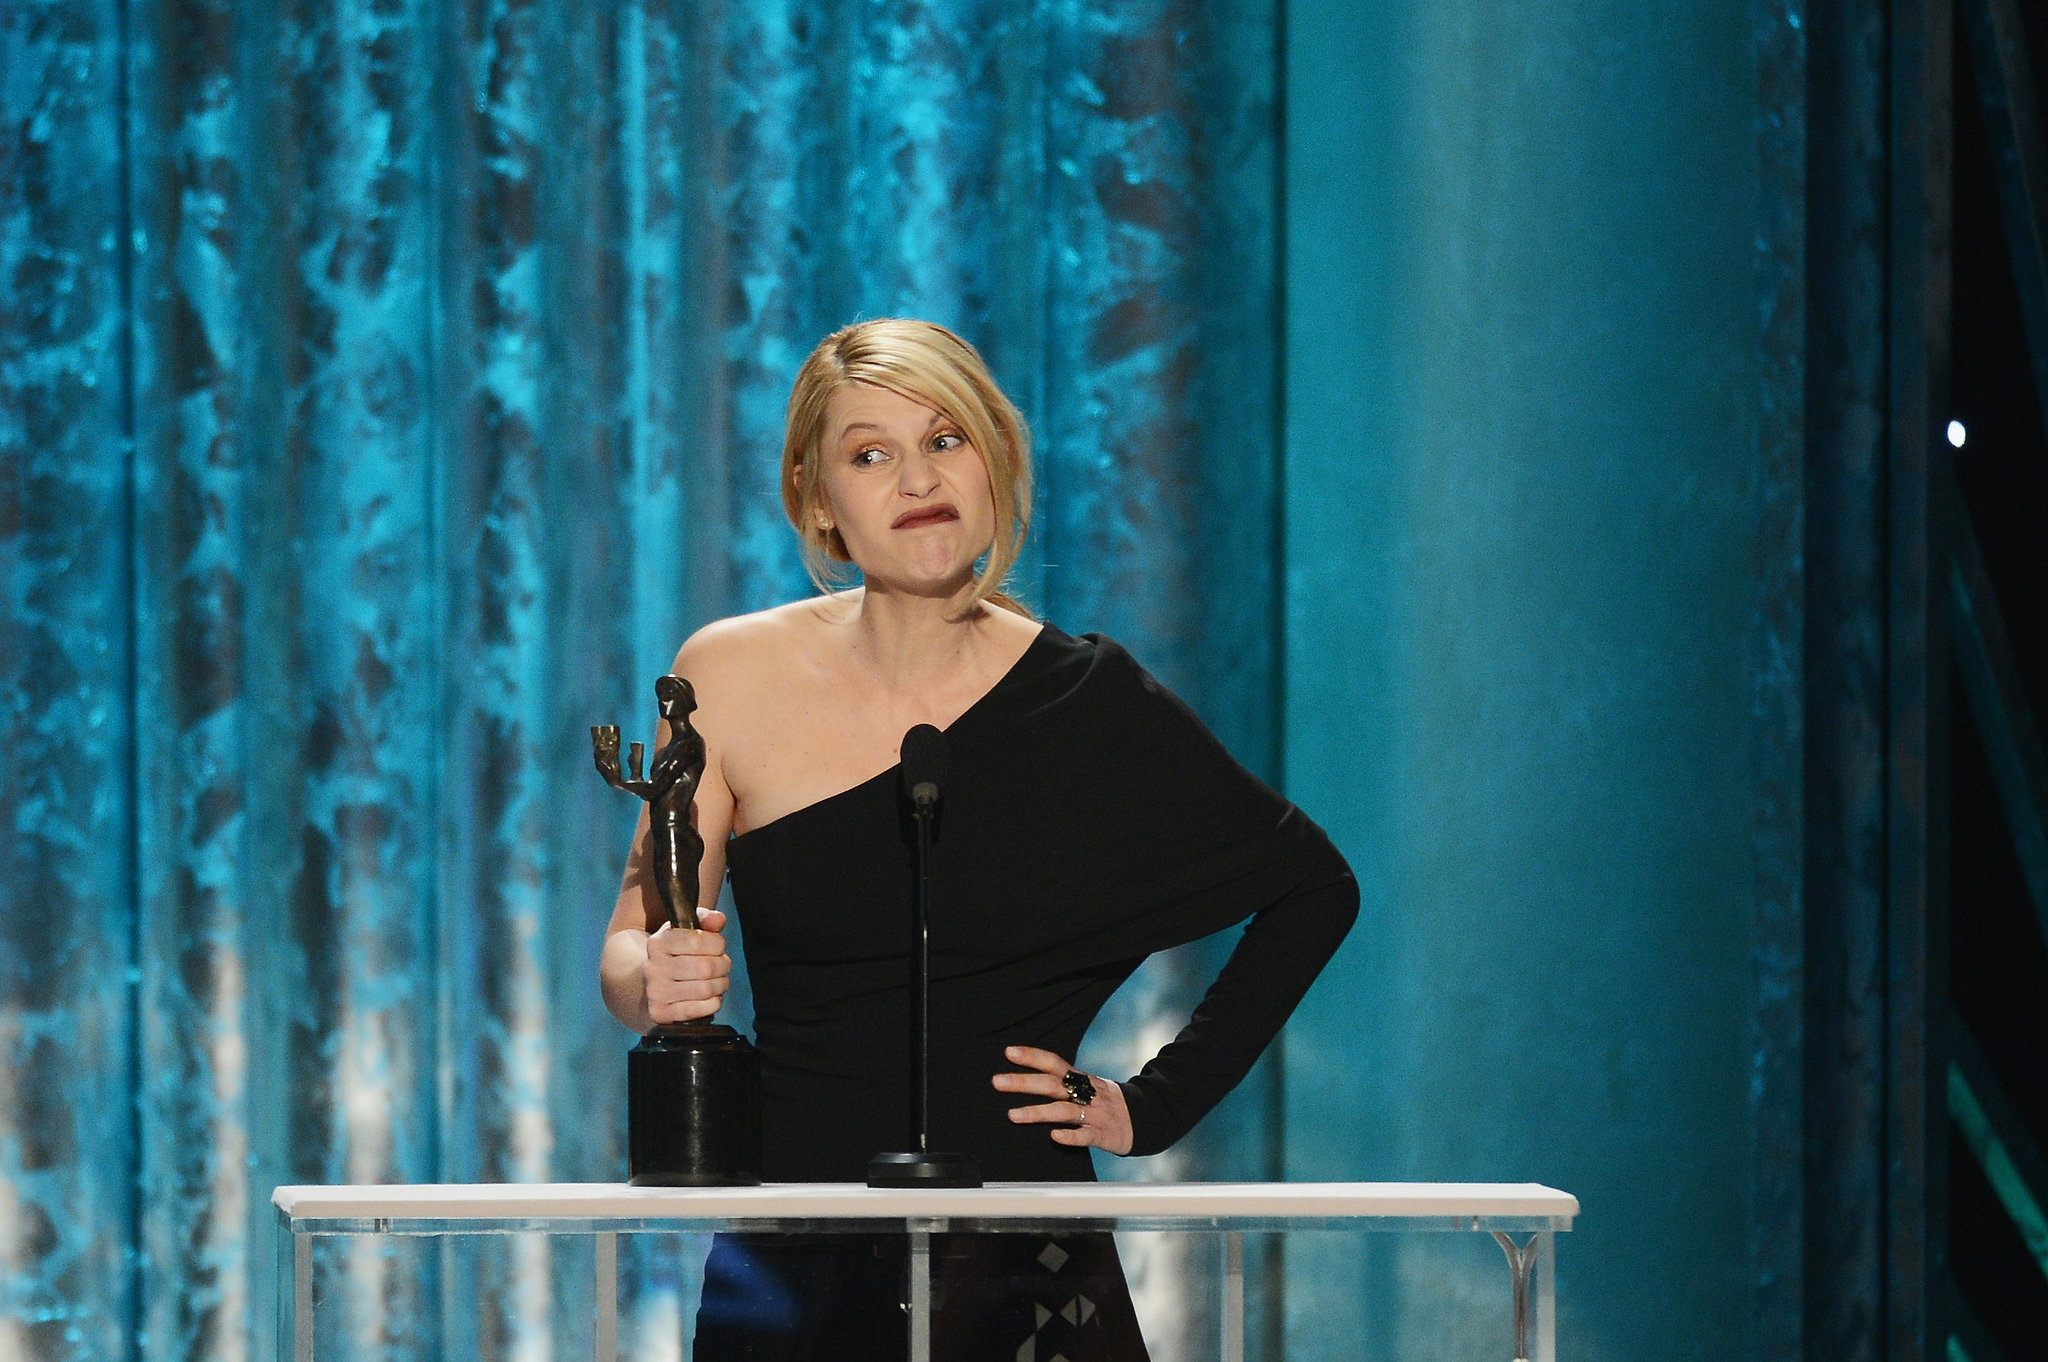 Claire Danes got a few laughs during her acceptance speech for Homeland at the SAG Awards.